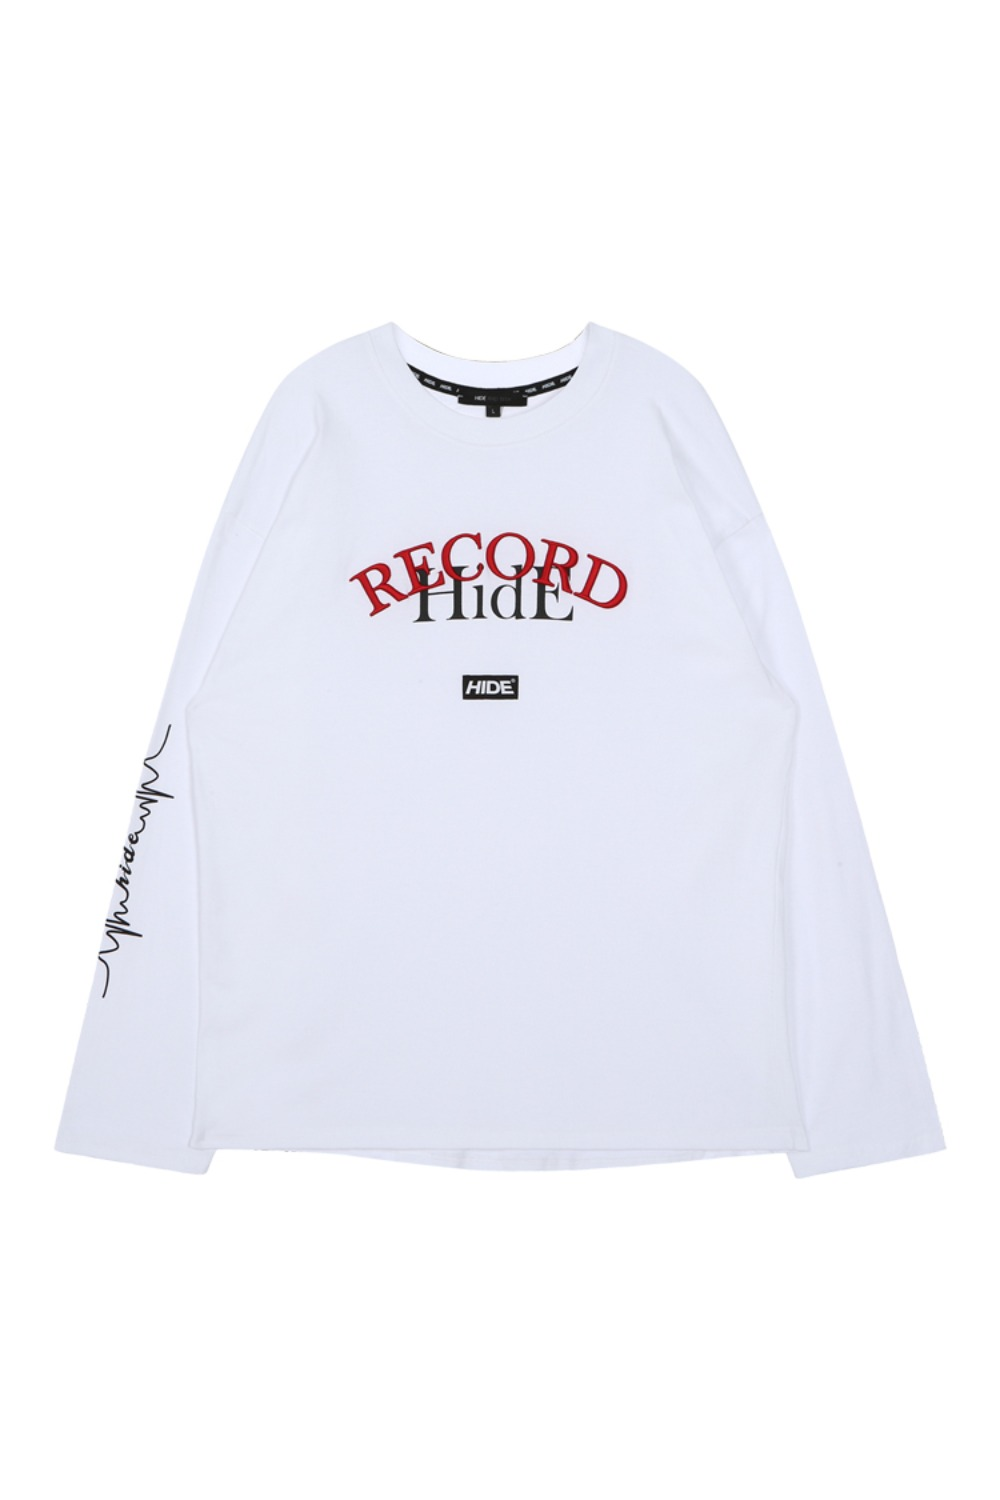 HIDE Overfit Record T-Shirt IVORY